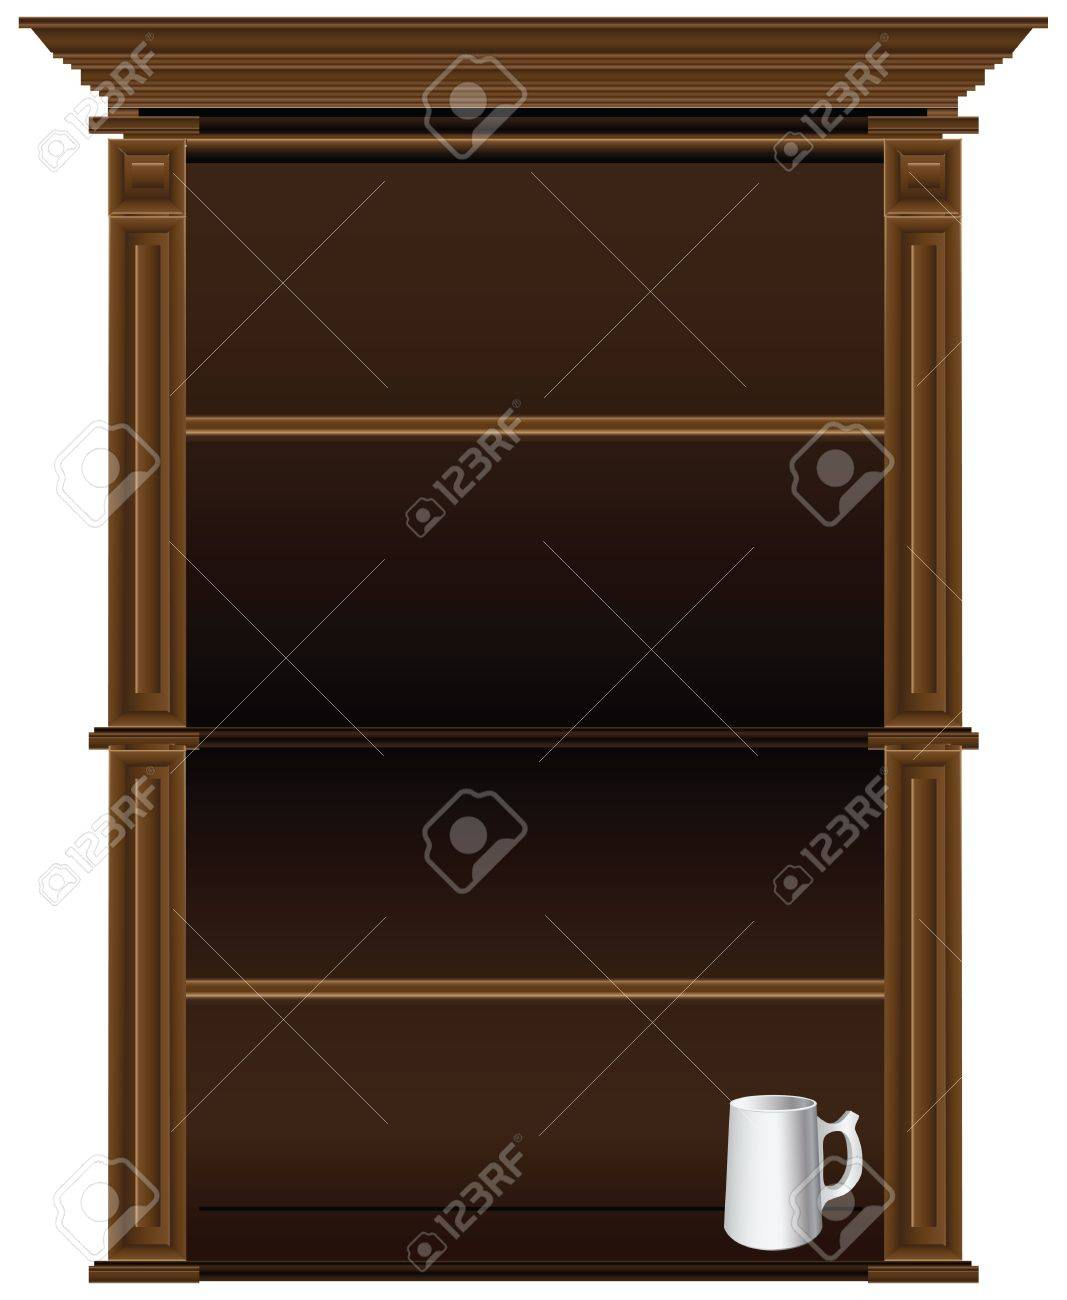 Antique kitchen cupboard - Antique Kitchen Cupboard In The Old Style Stock Vector 17101915